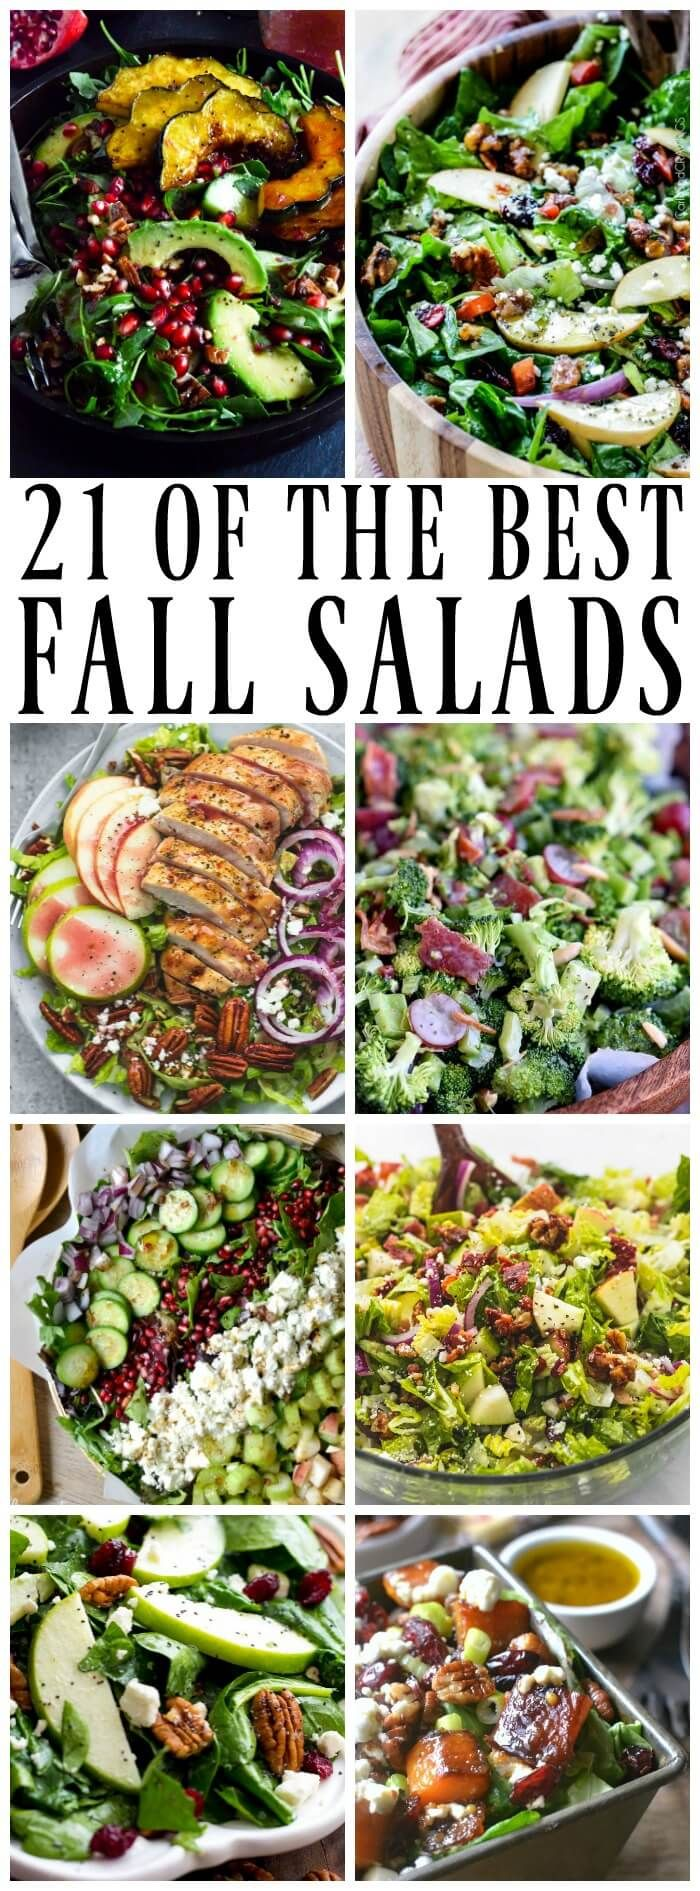 Best Salad Recipes for Fall - easy ideas including kale, green salad, fruit, apples and more